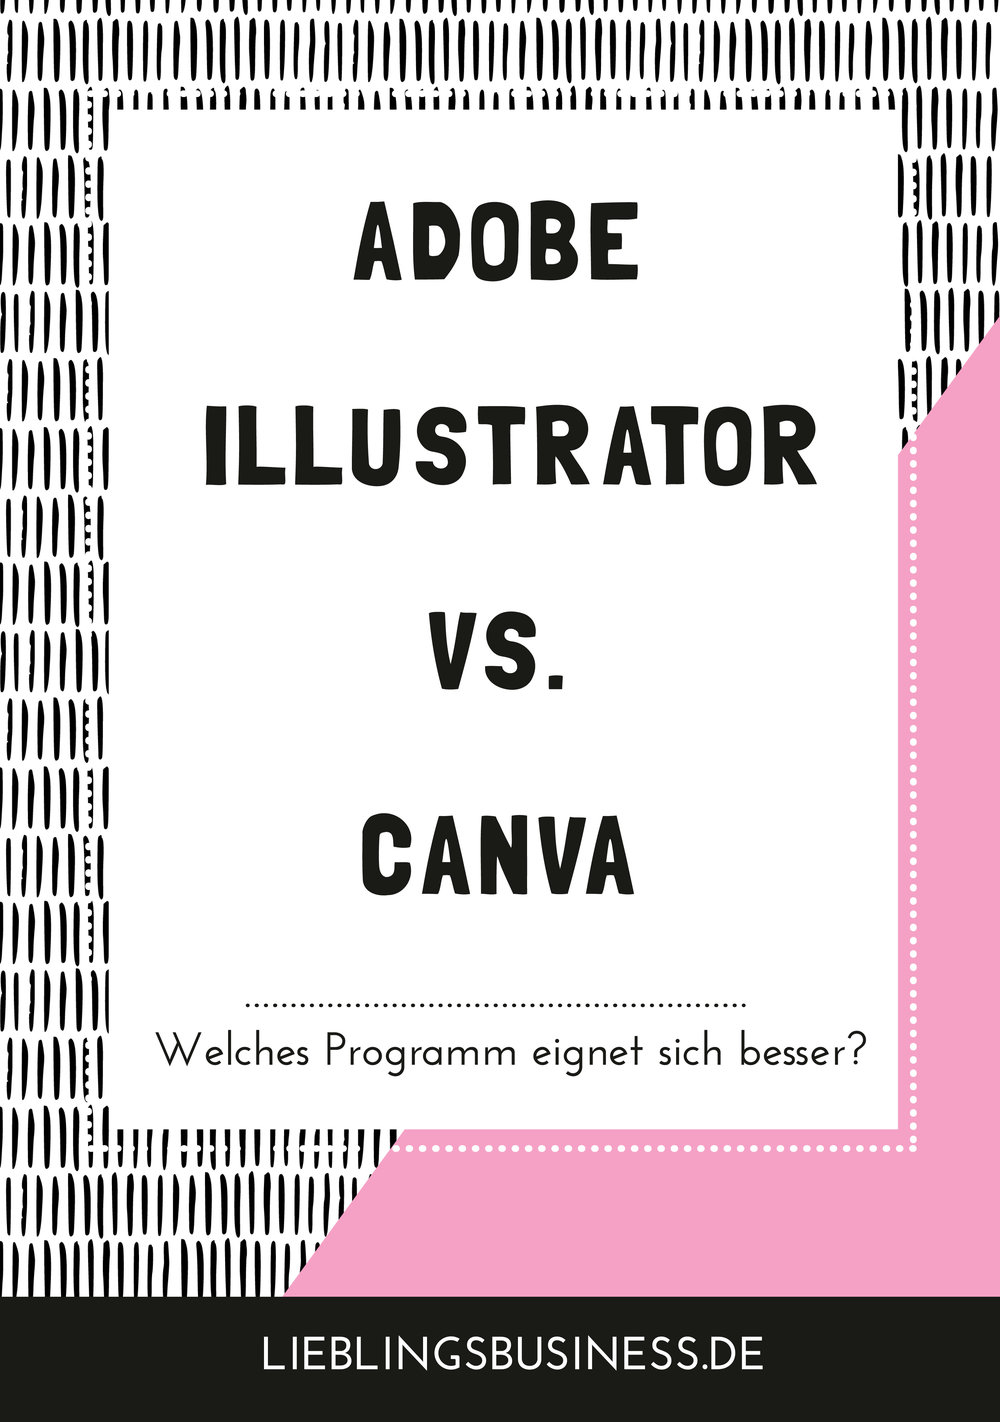 illustratorvscanva.jpg